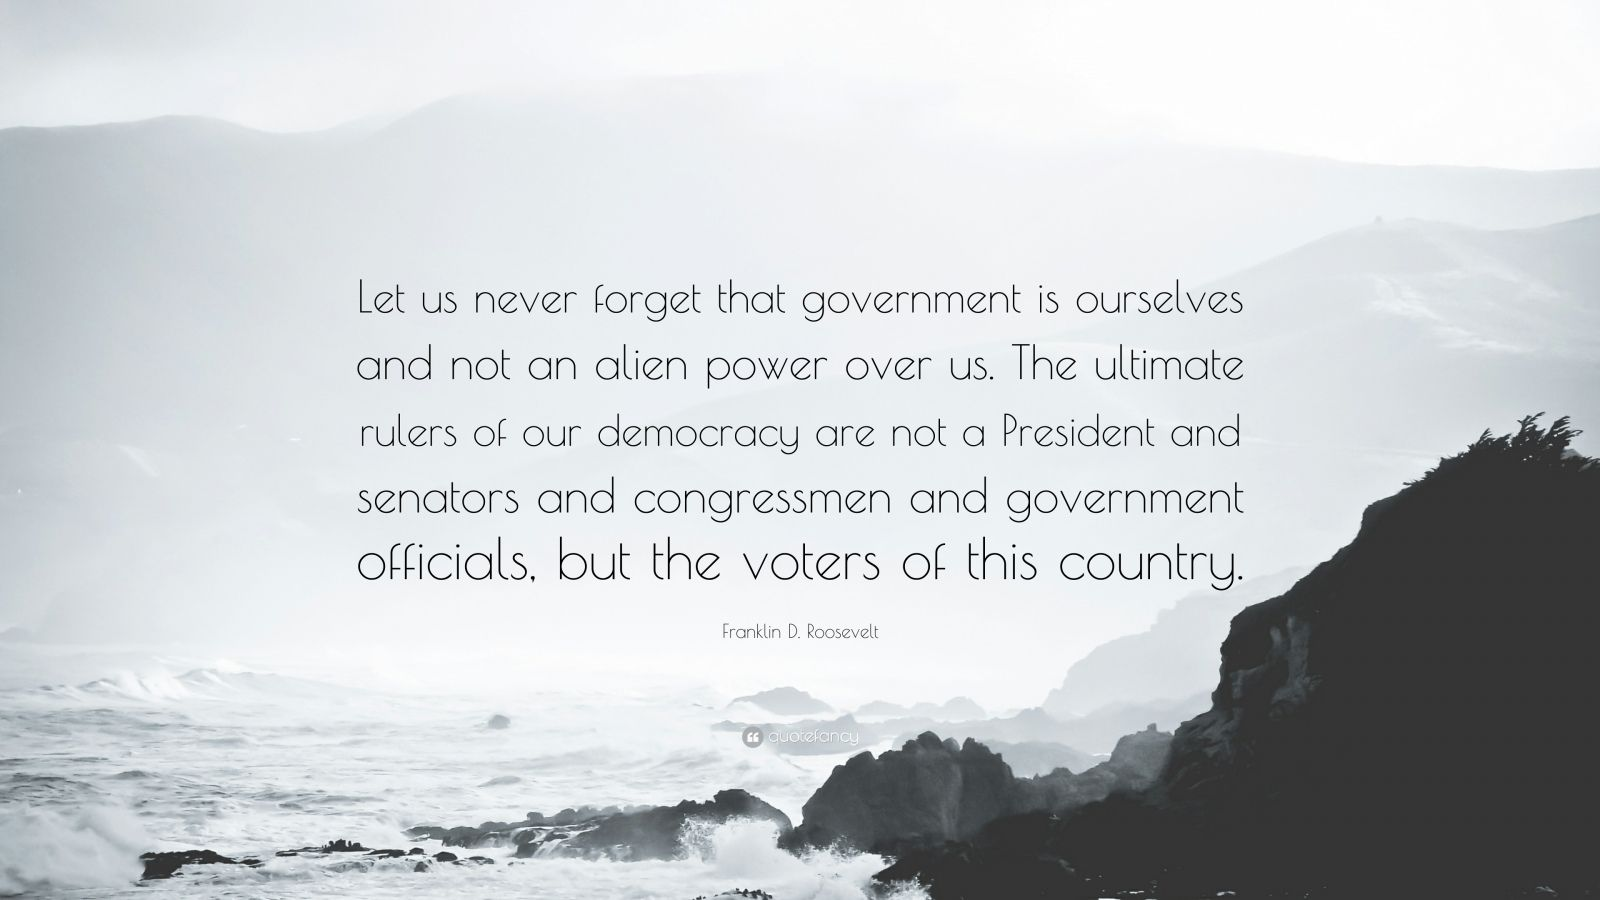 """Franklin D. Roosevelt Quote: """"Let us never forget that government is ourselves and not an alien power over us. The ultimate rulers of our democracy are not a President and senators and congressmen and government officials, but the voters of this country."""""""